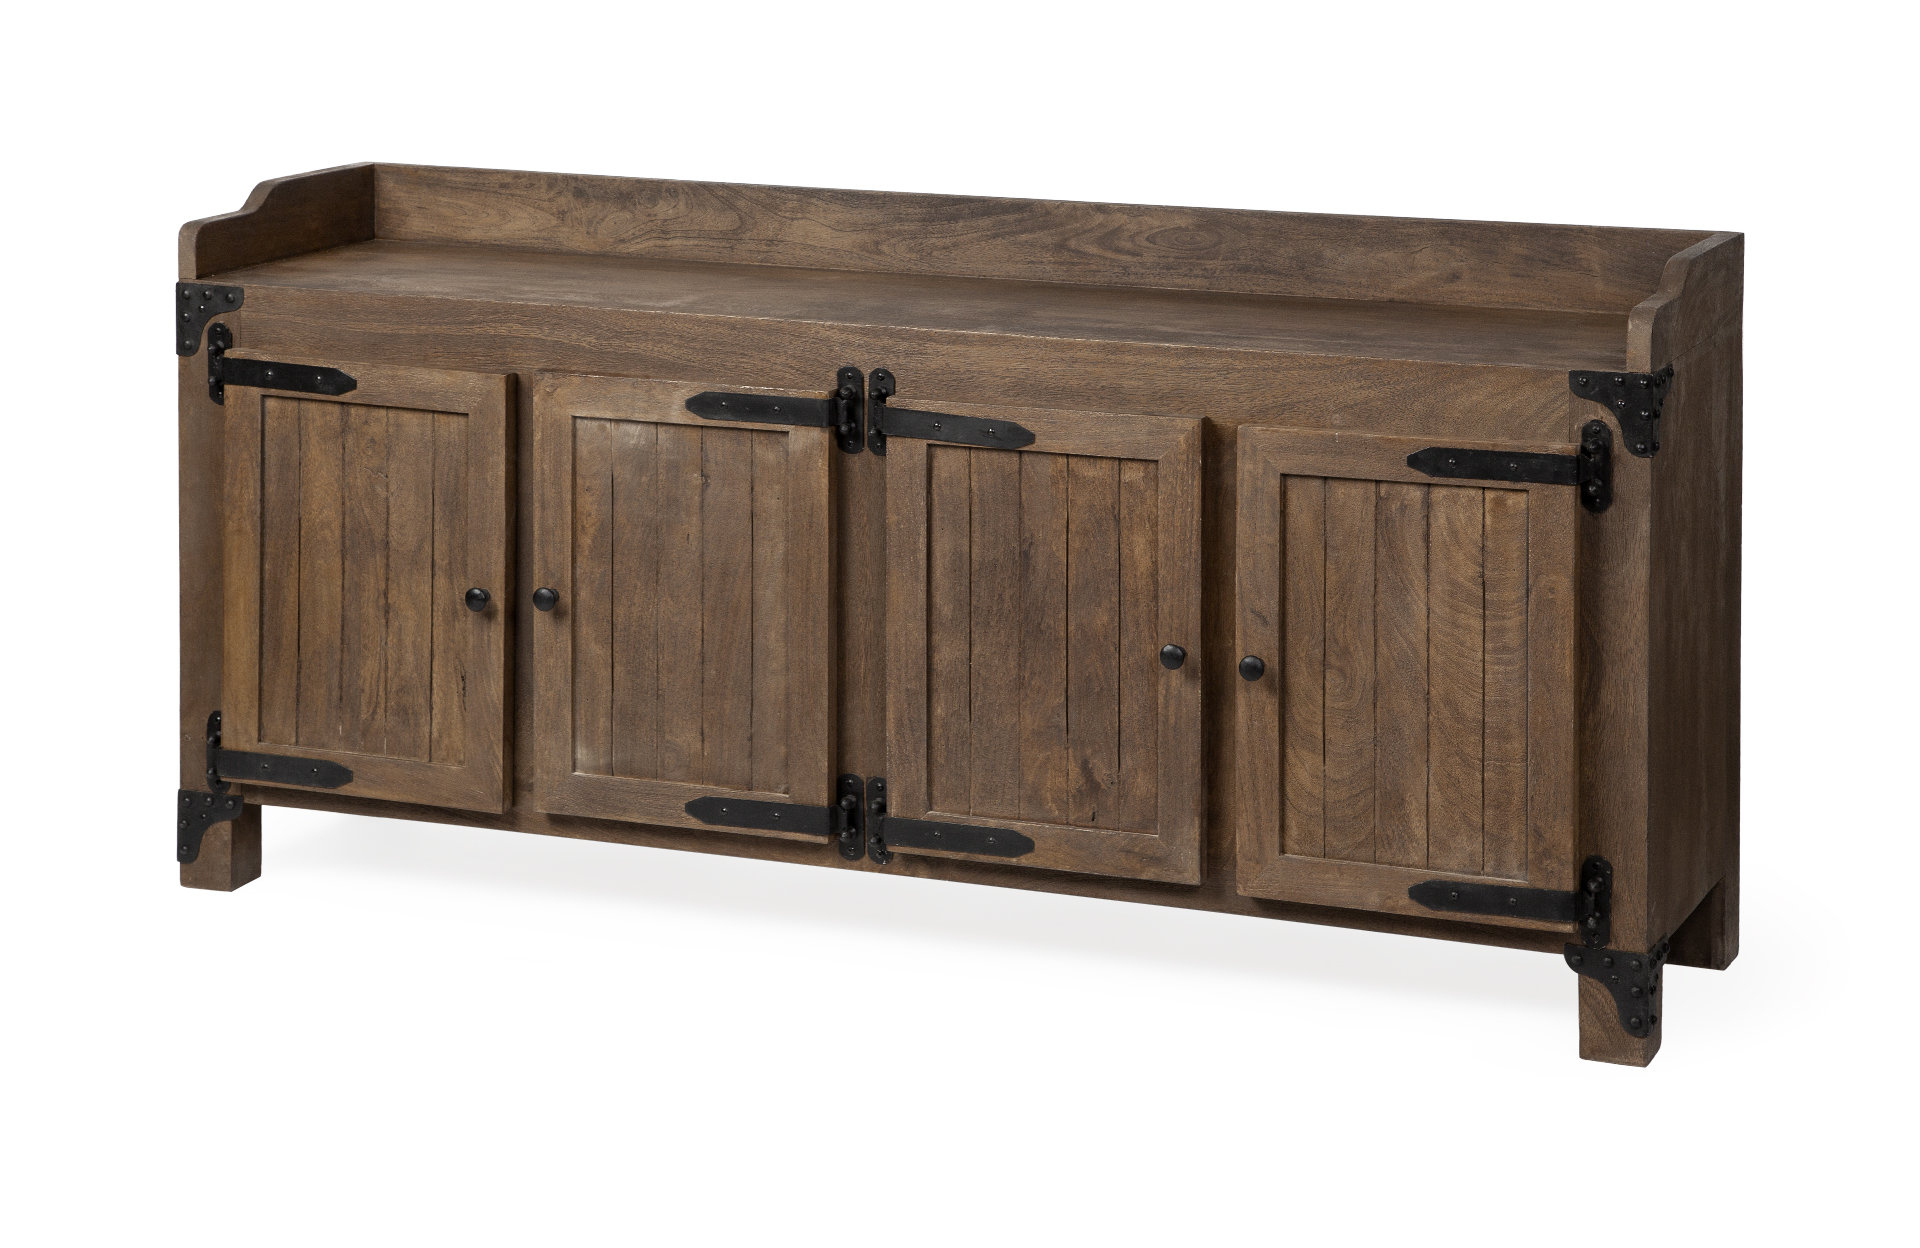 Scurlock Old Crow Sideboard With Regard To Current Whitten Sideboards (#16 of 20)